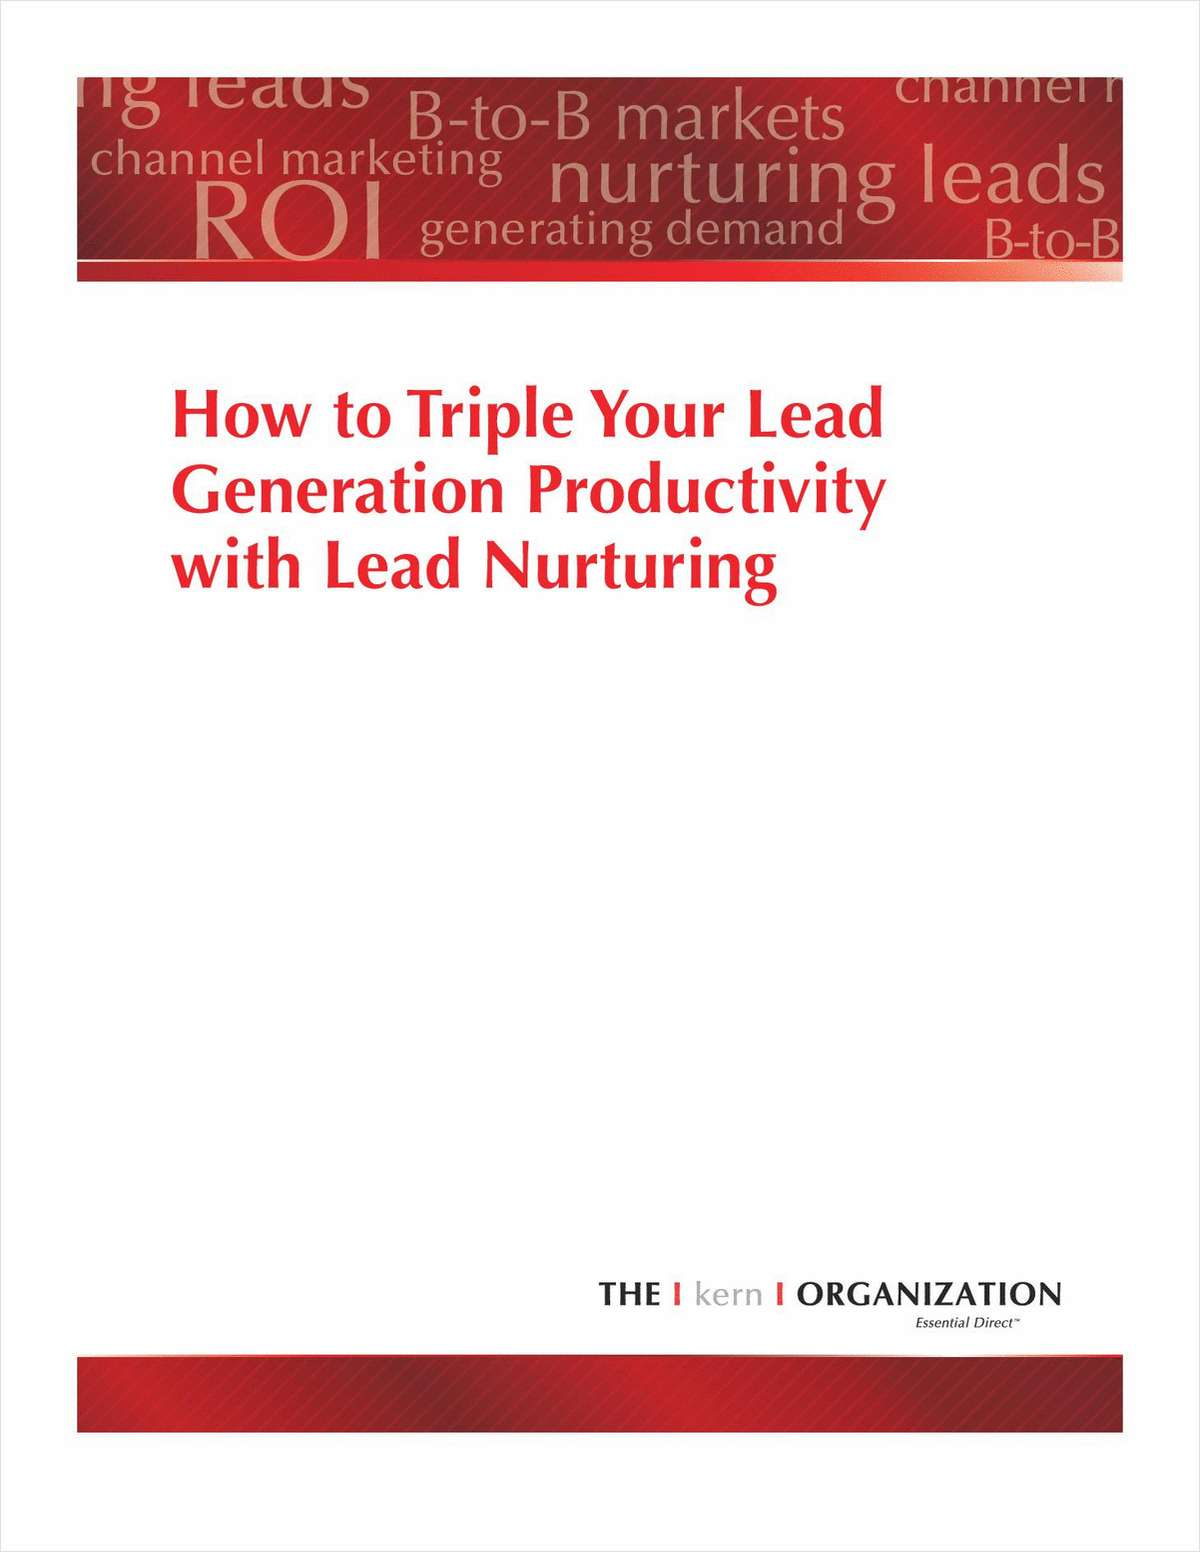 How to Triple Your Lead Generation Productivity with Lead Nurturing